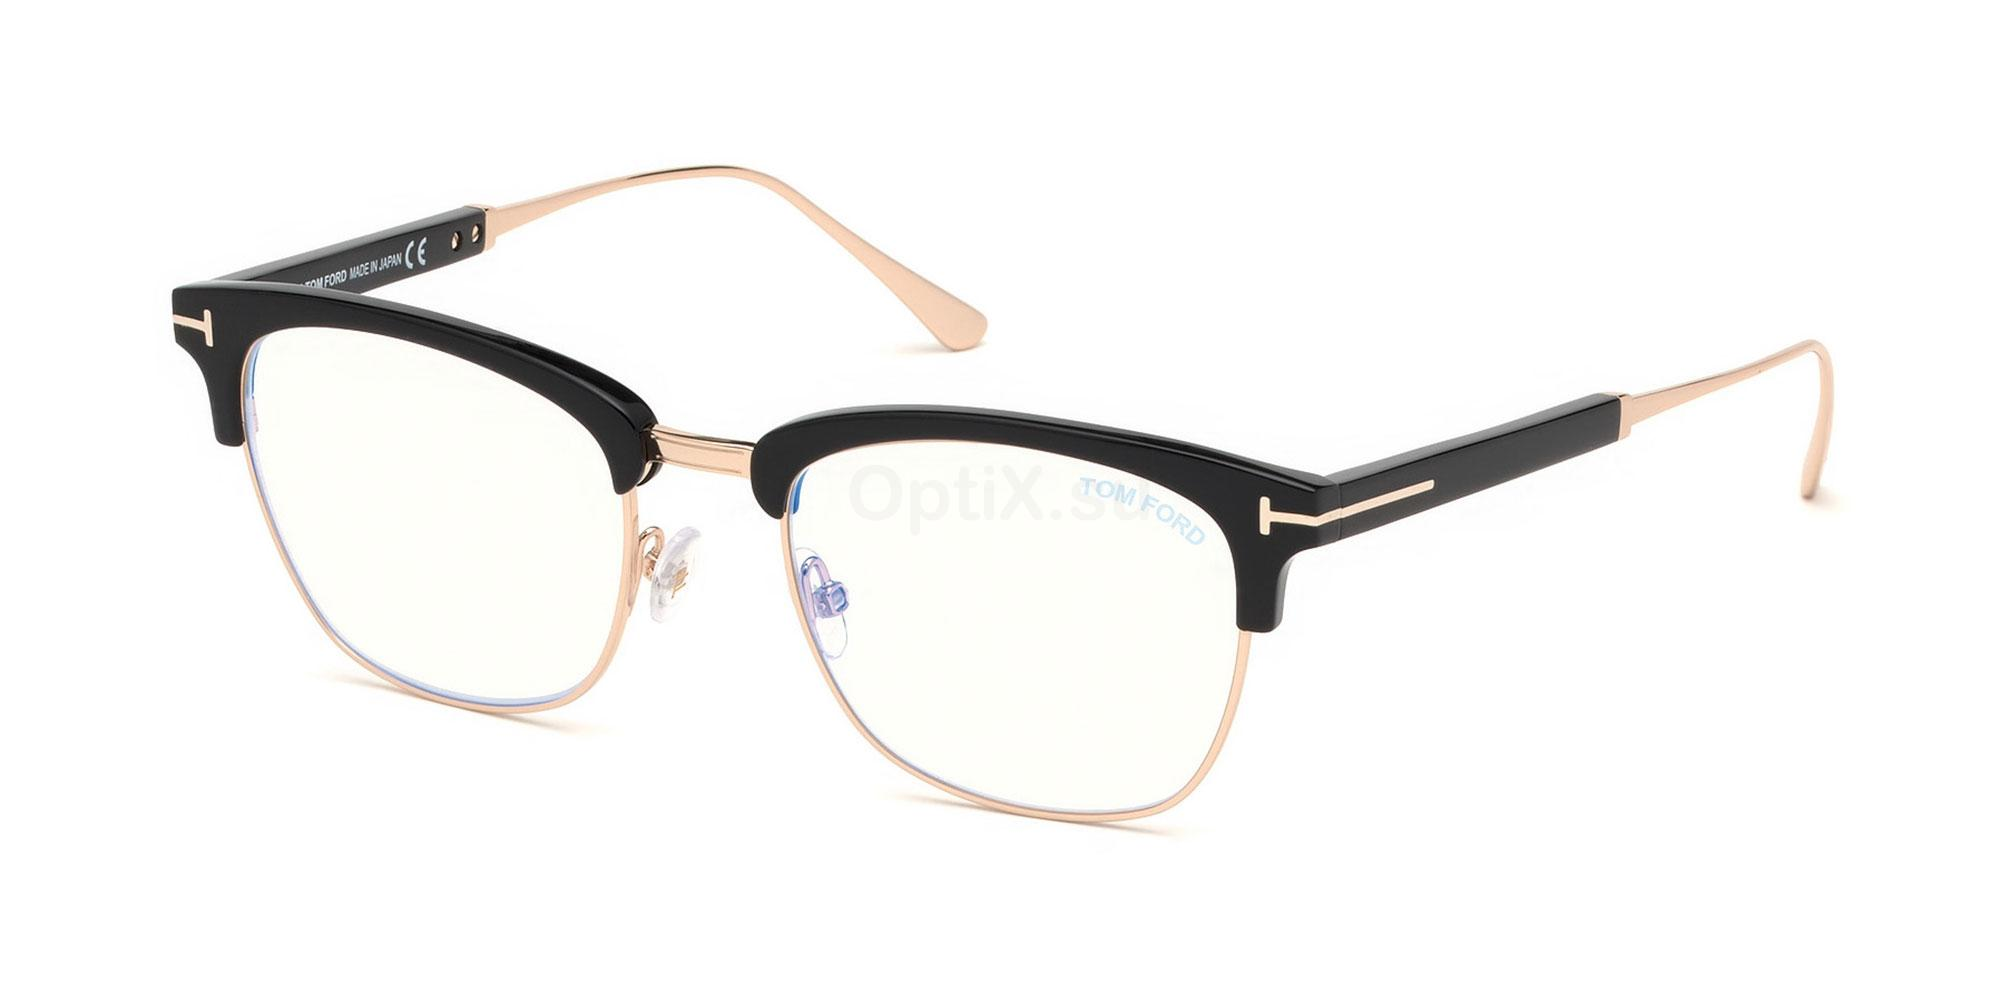 001 FT5590-B Glasses, Tom Ford